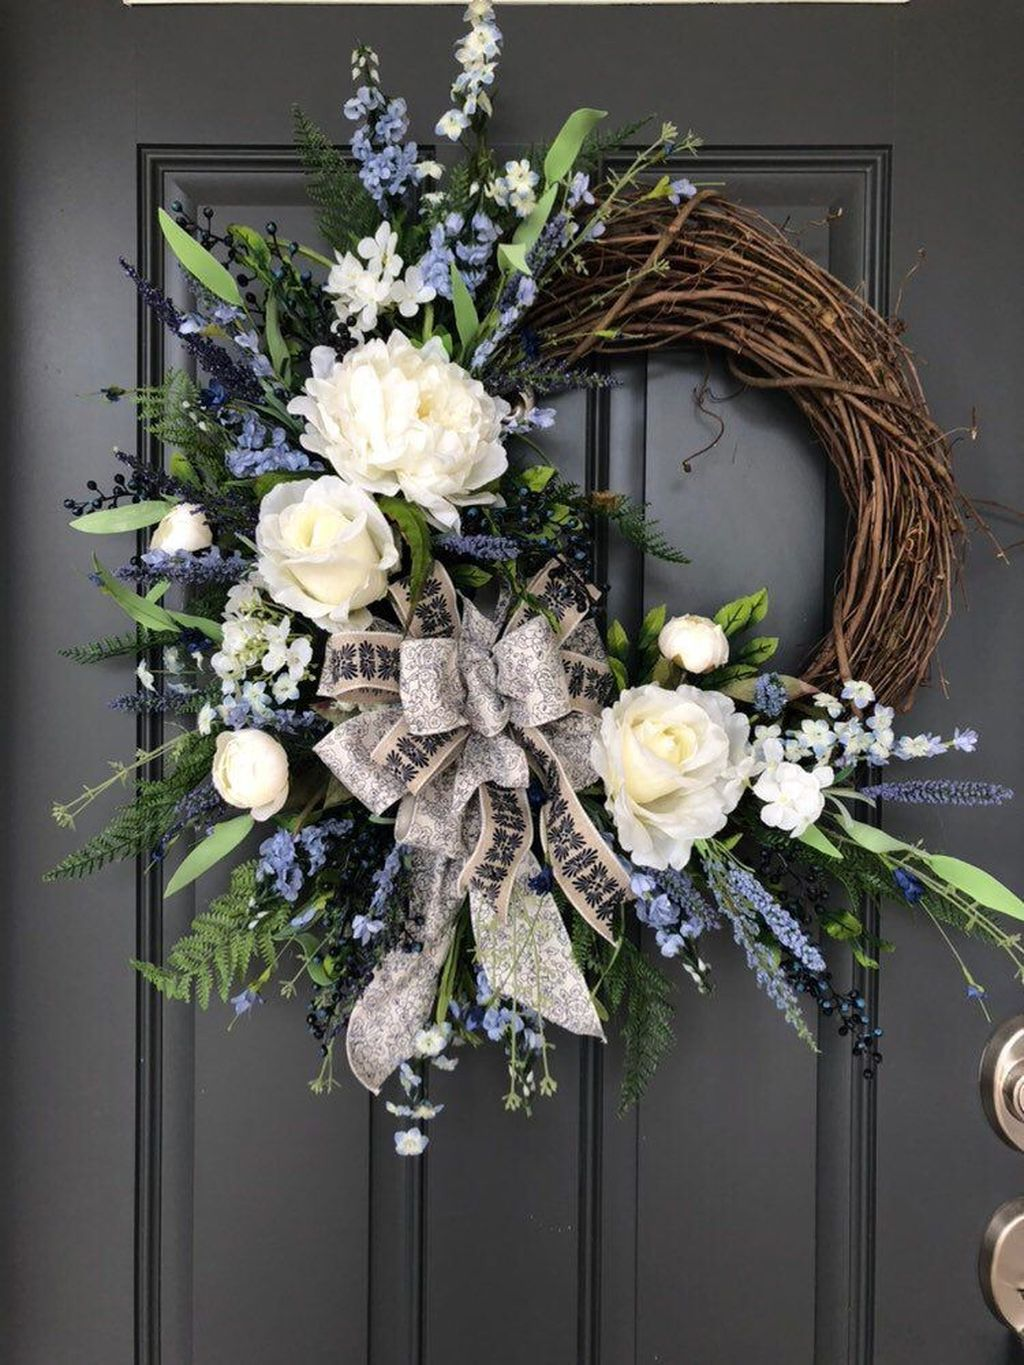 Inspiring Summer Wreath Design Ideas You Should Copy 29